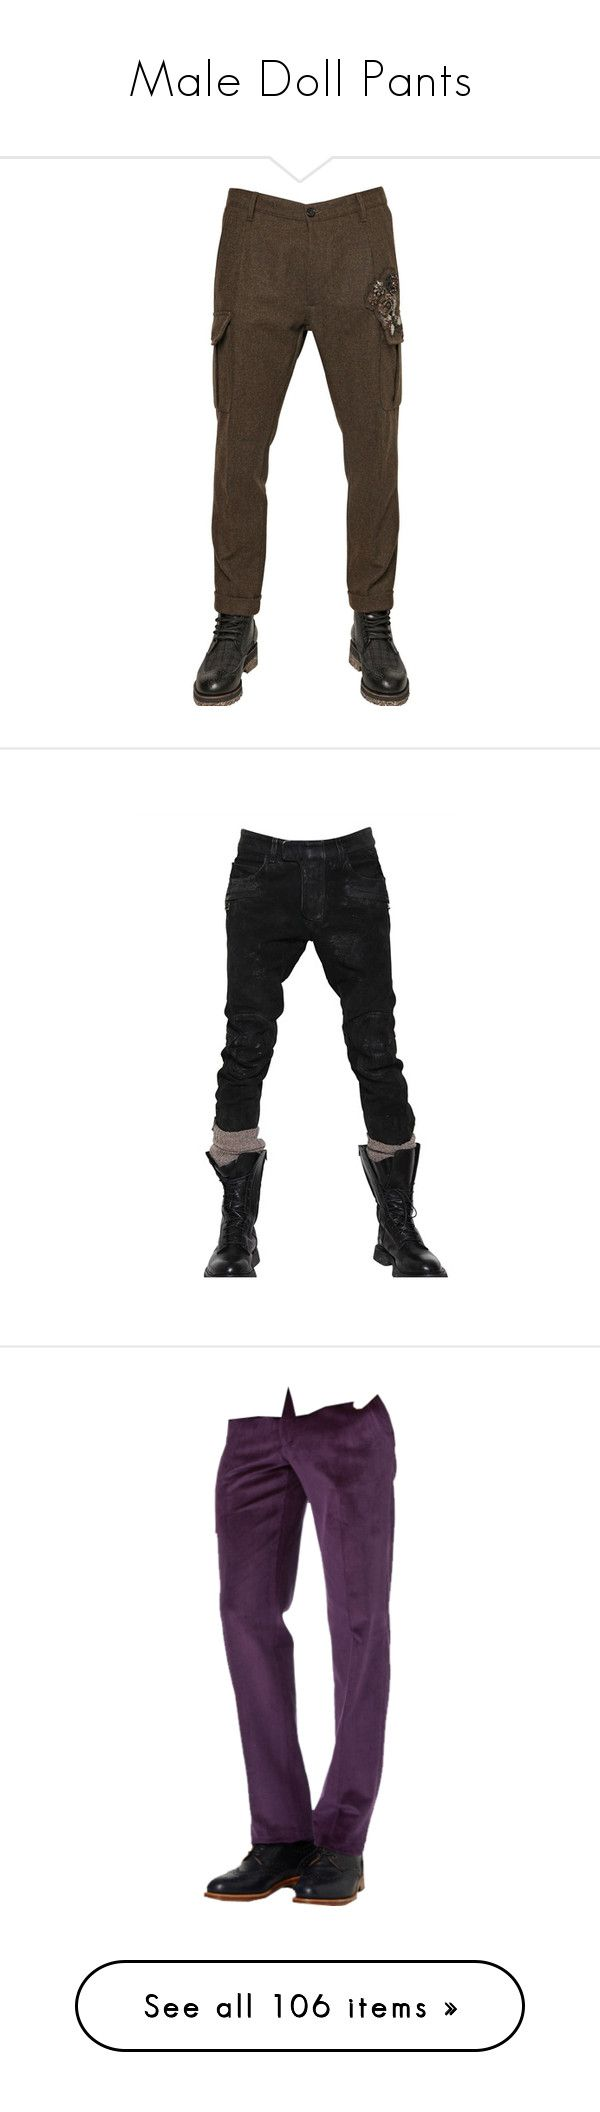 """""""Male Doll Pants"""" by kbarkstyle ❤ liked on Polyvore featuring men's fashion, men's clothing, men's pants, men's casual pants, military green, mens cuffed pants, mens wool pants, mens wool cargo pants, mens cargo pants and mens olive green cargo pants"""